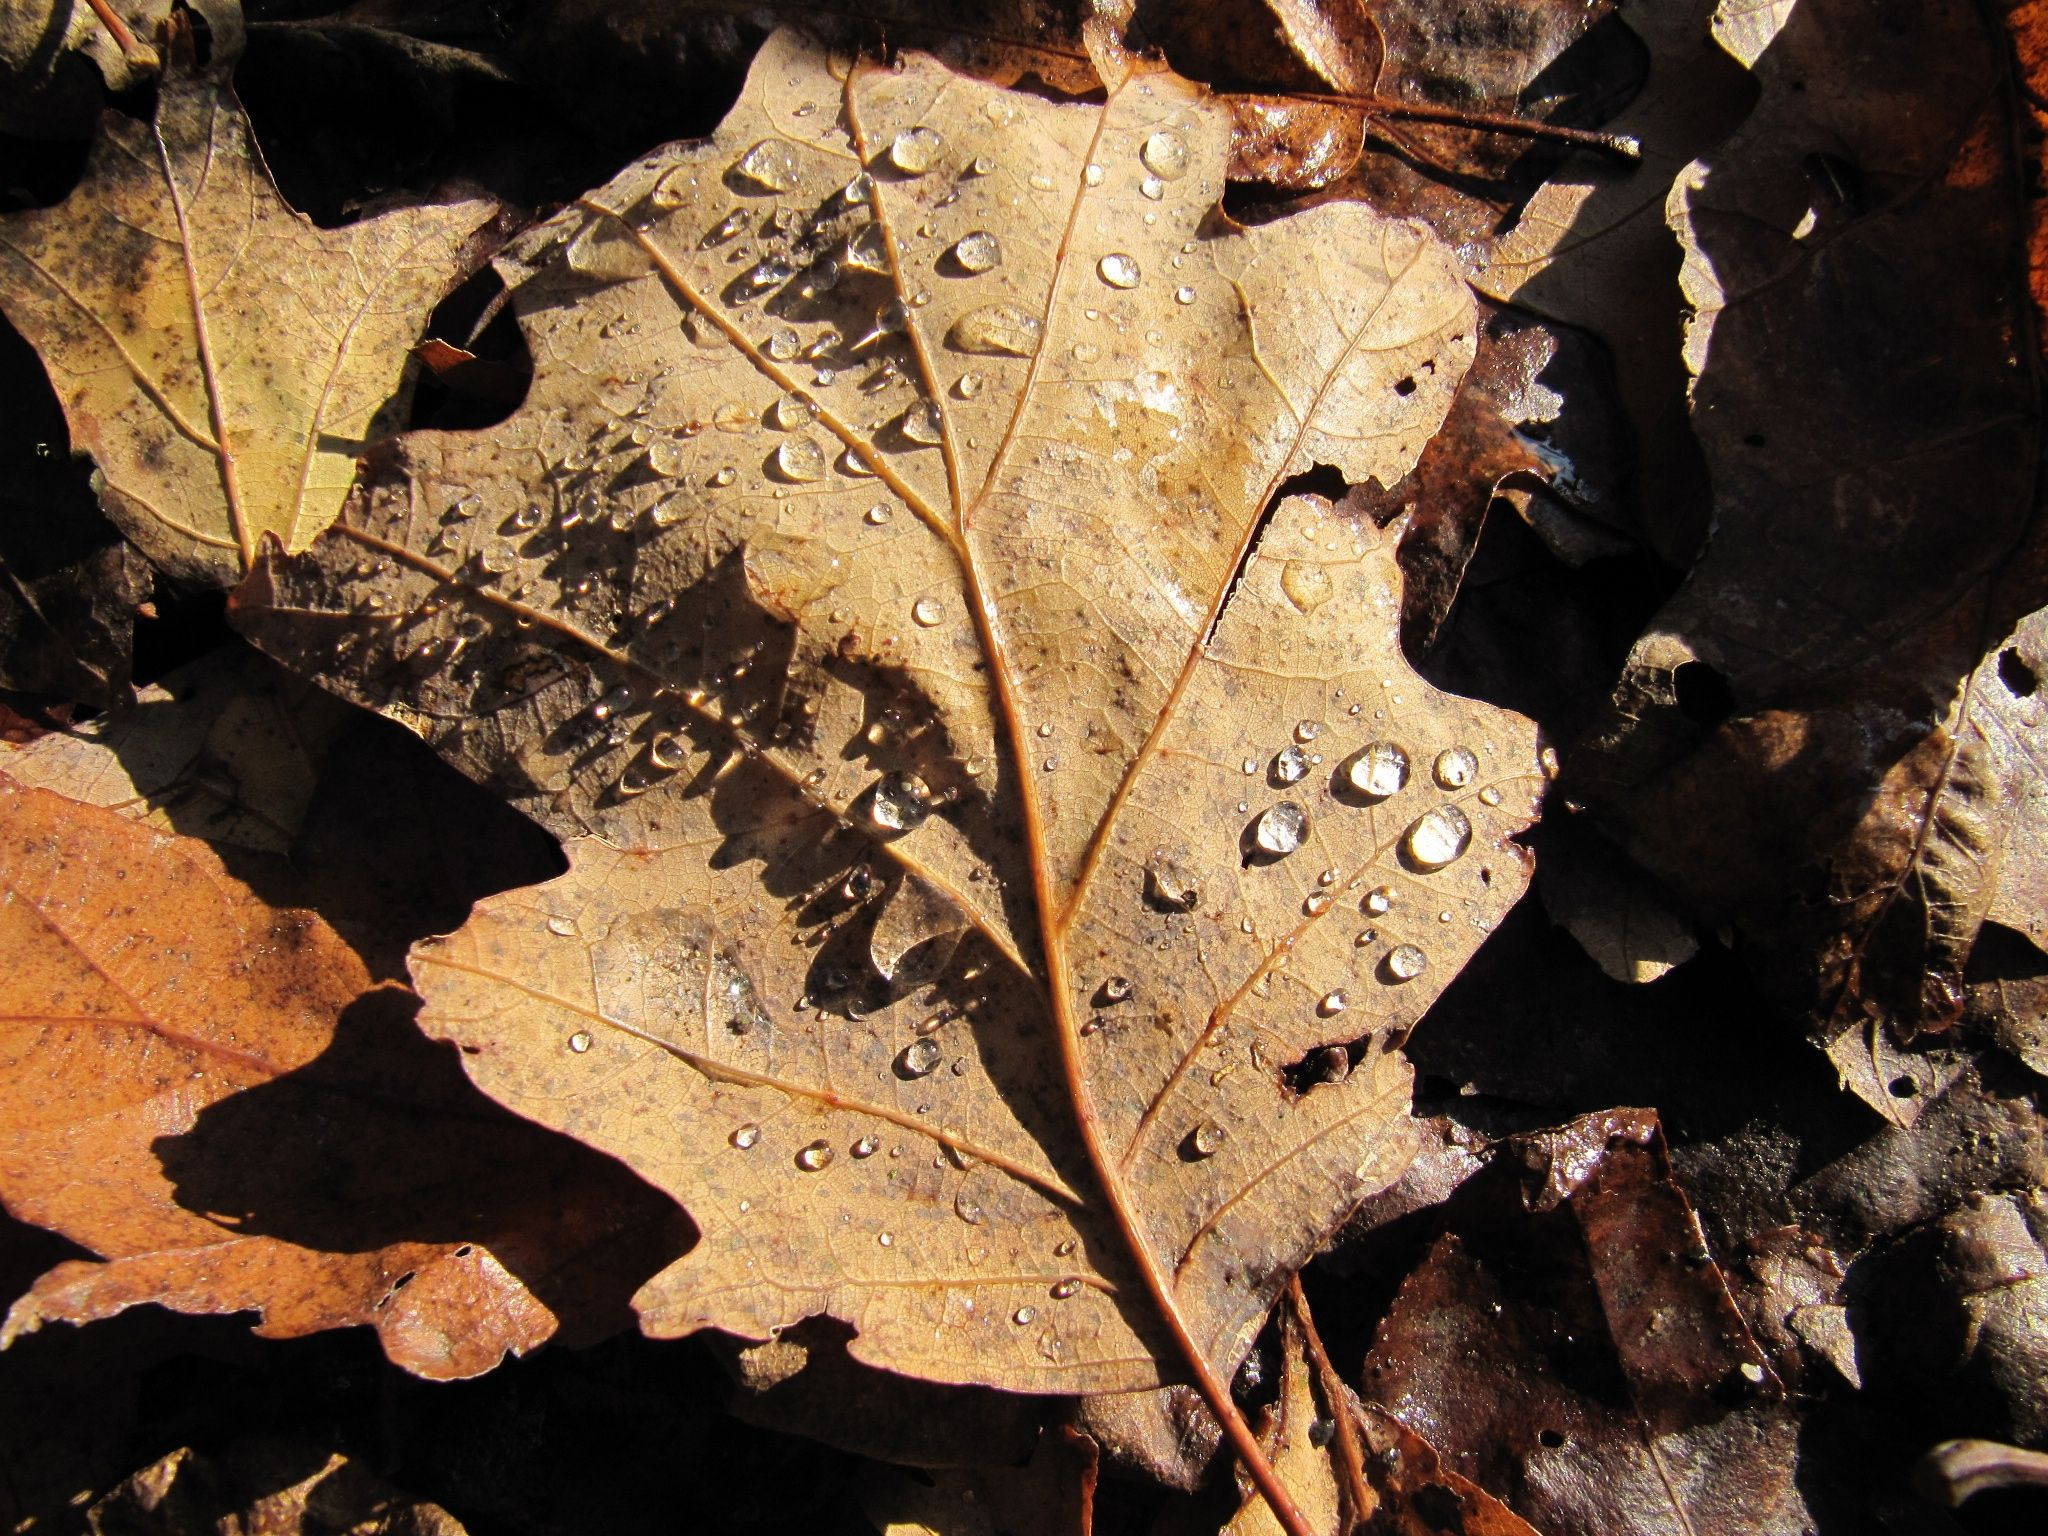 Raindrops on a withered leaf.